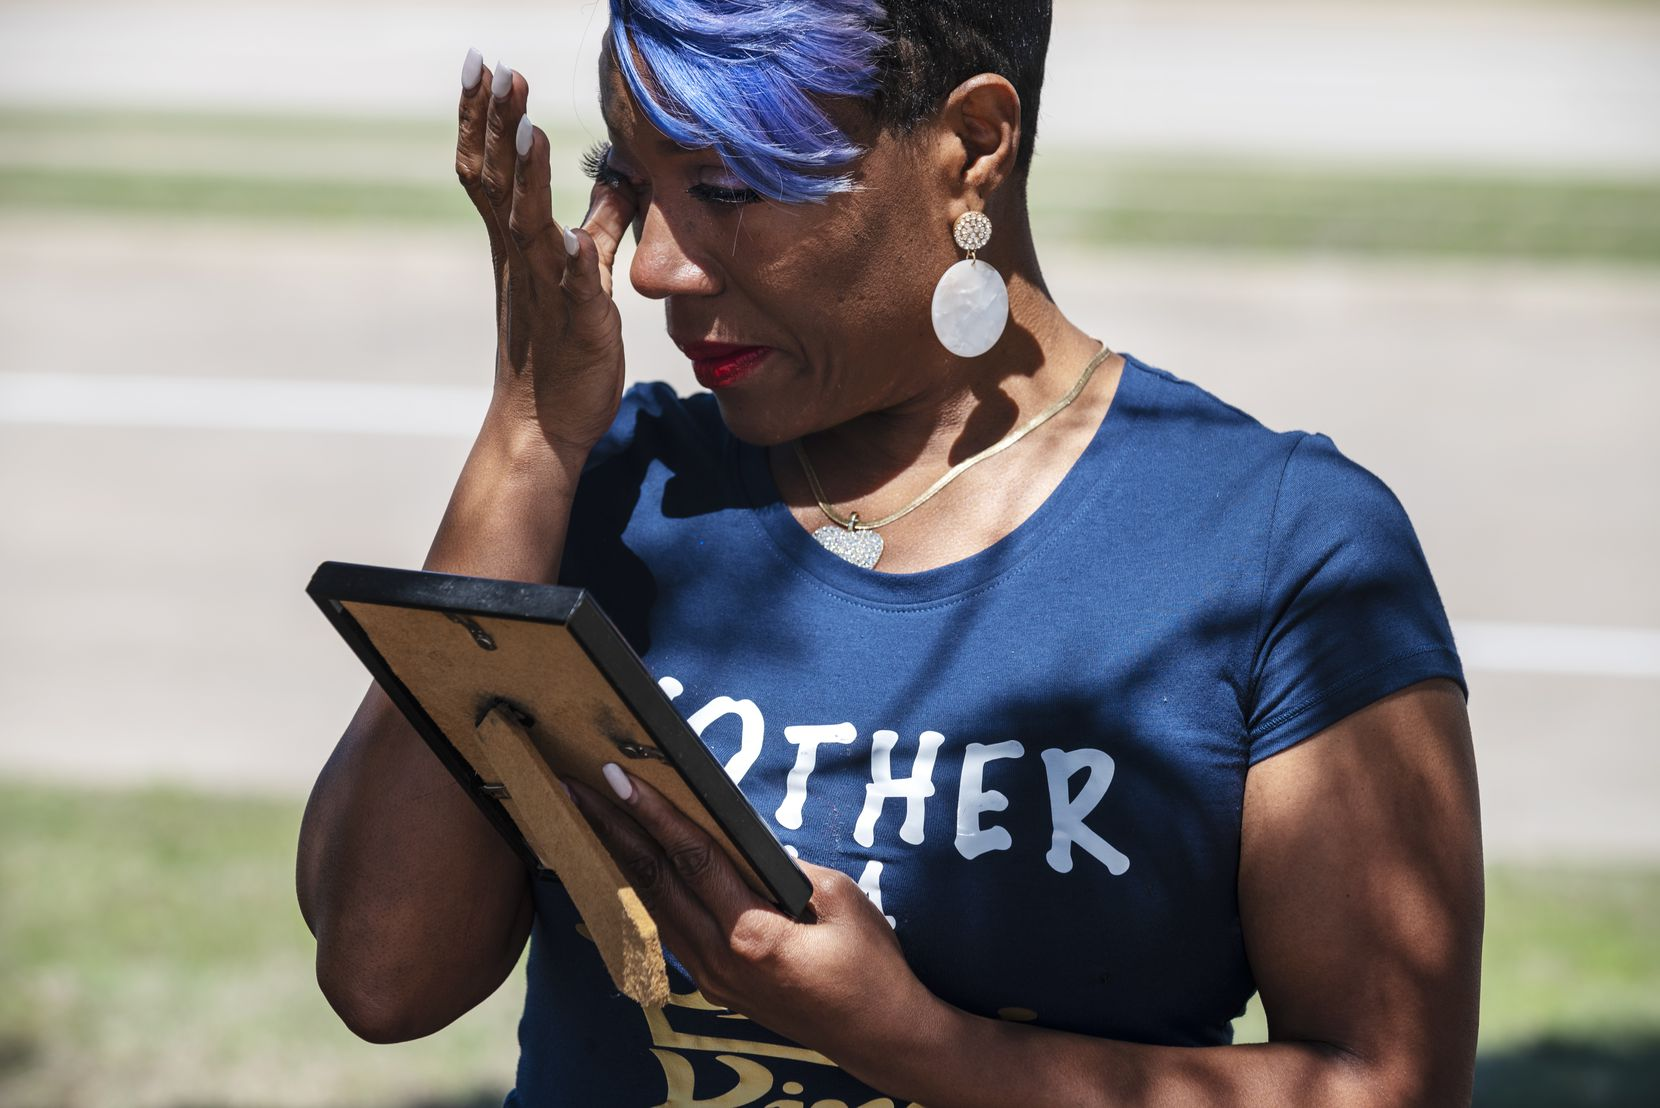 Donna Fields, 47, wipes away tears while looking at a photo of her son Marcus Bell Jr., when he was 12 years old. Bell says he was raped by Pastor Rickie Rush when he was 13. Fields and her sister also say Rush sexually assaulted them.